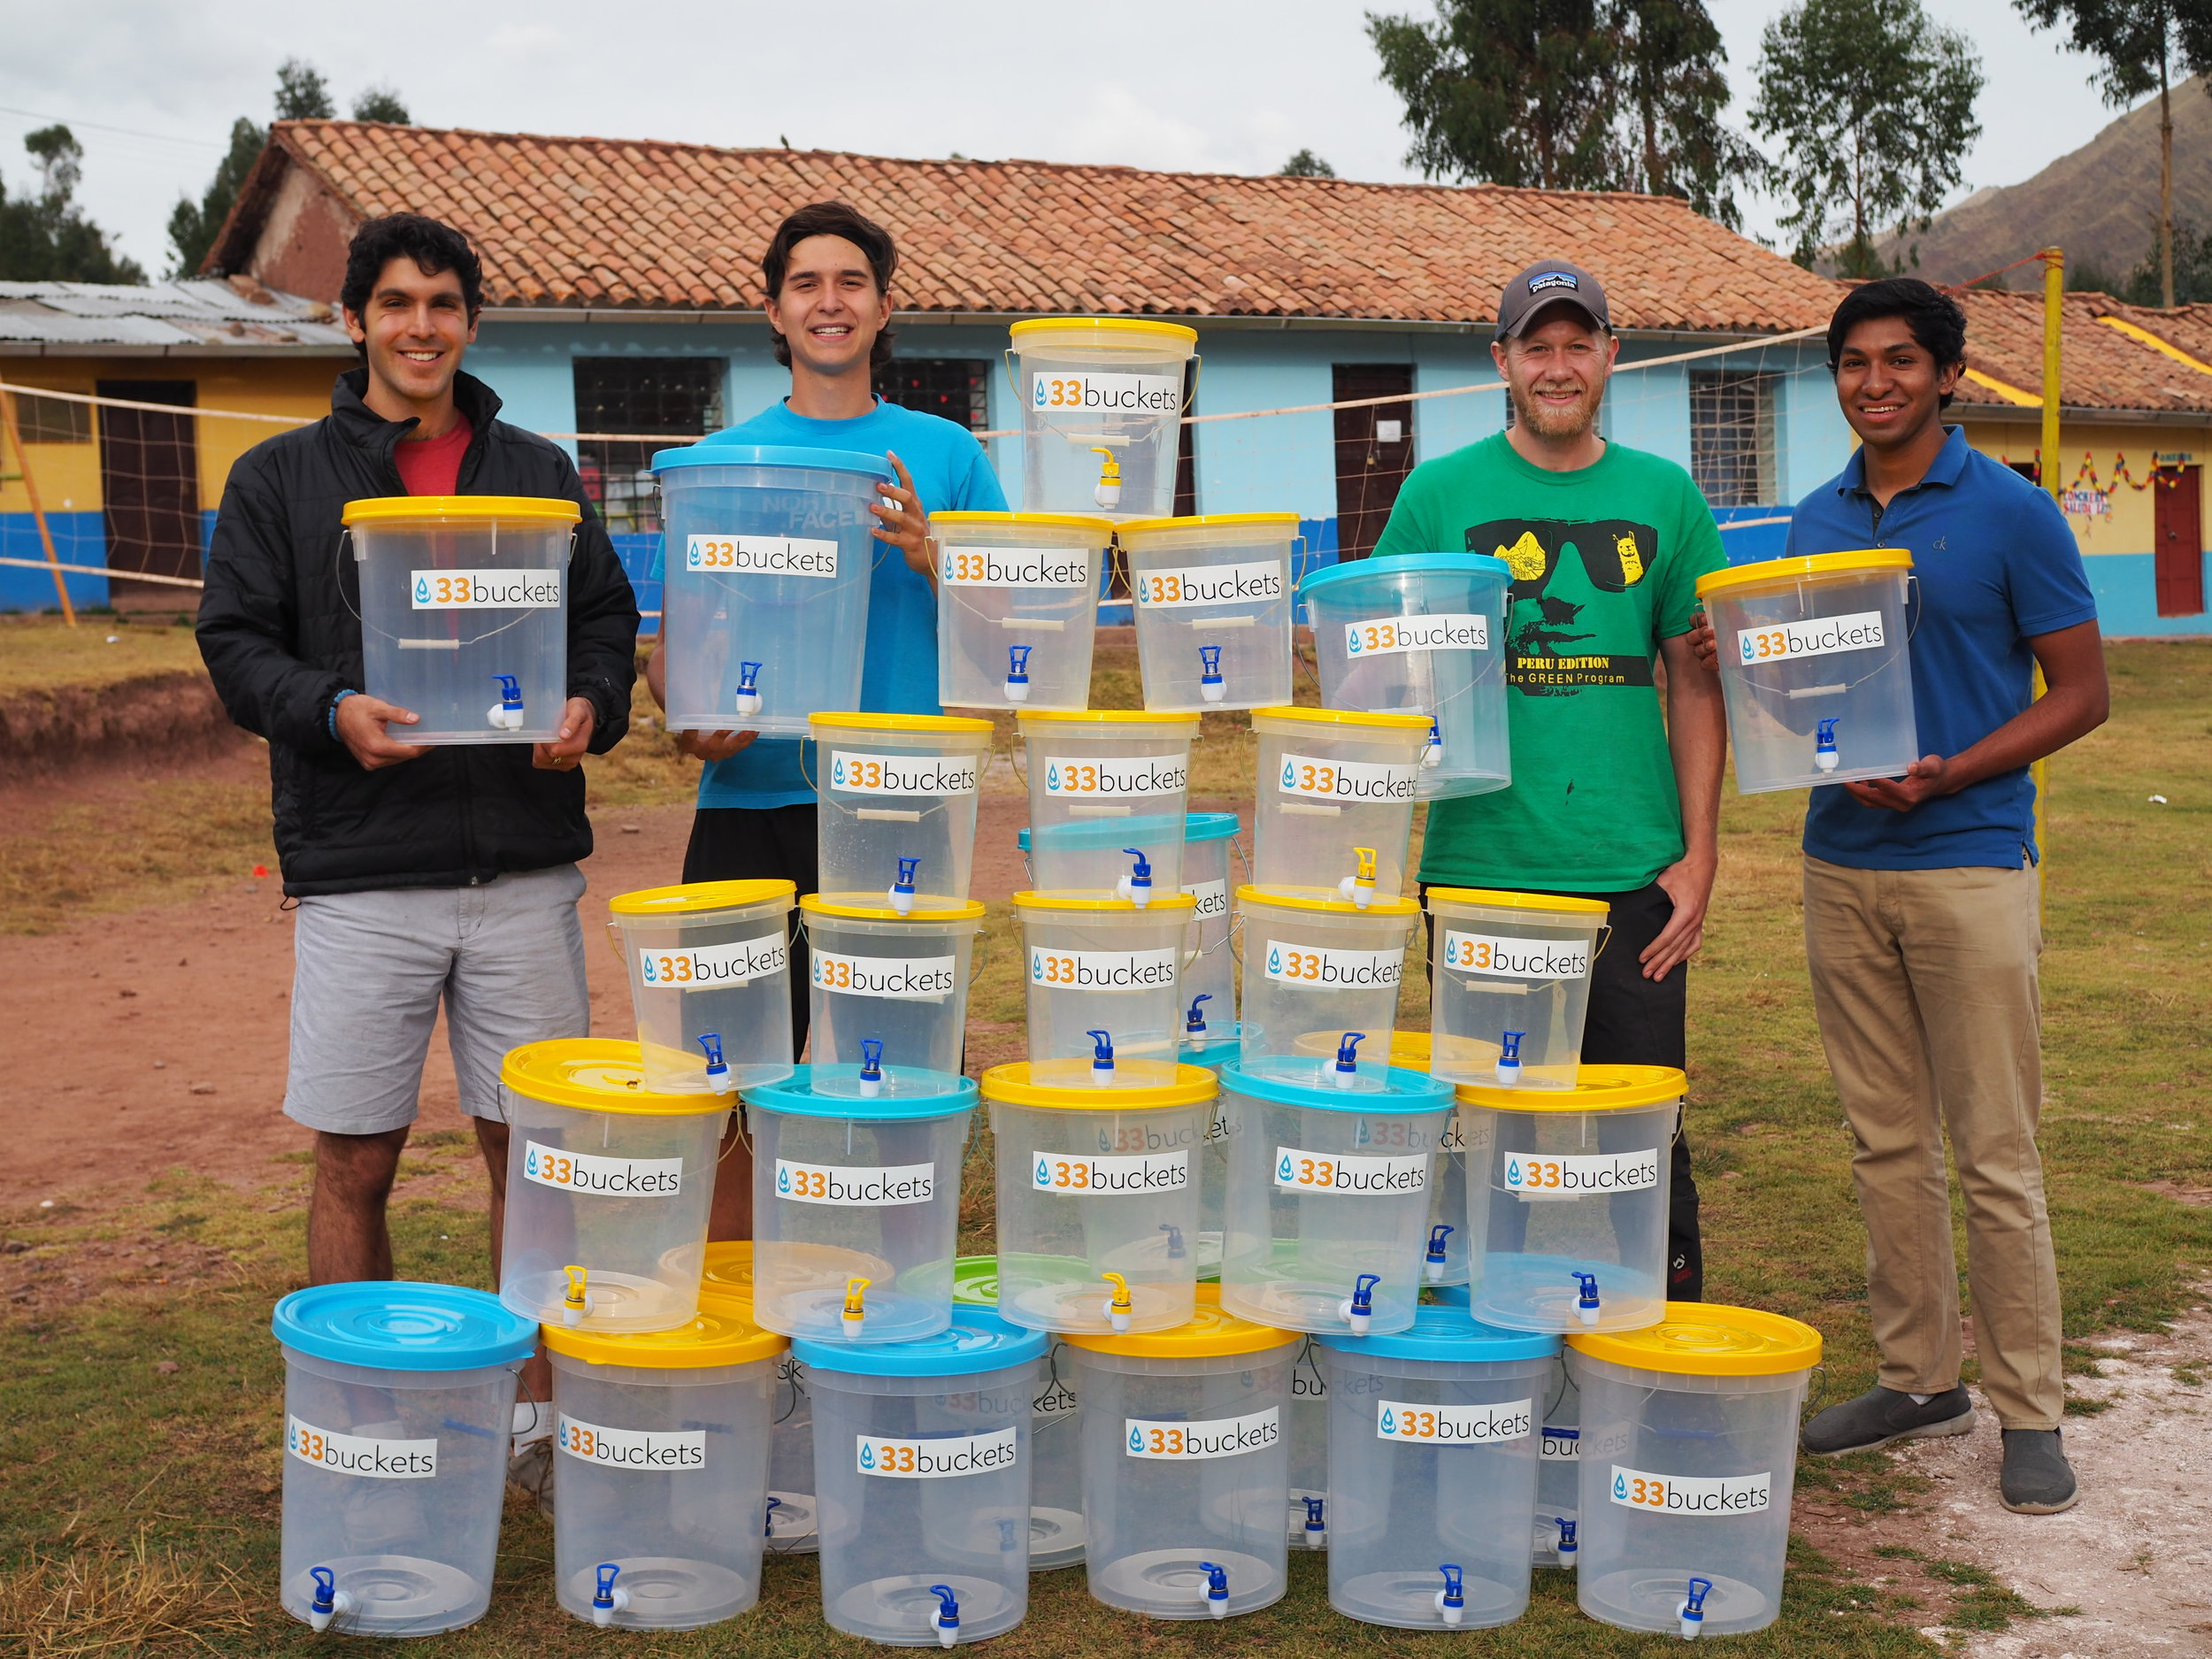 If you count carefully, you will see why we are called 33 Buckets